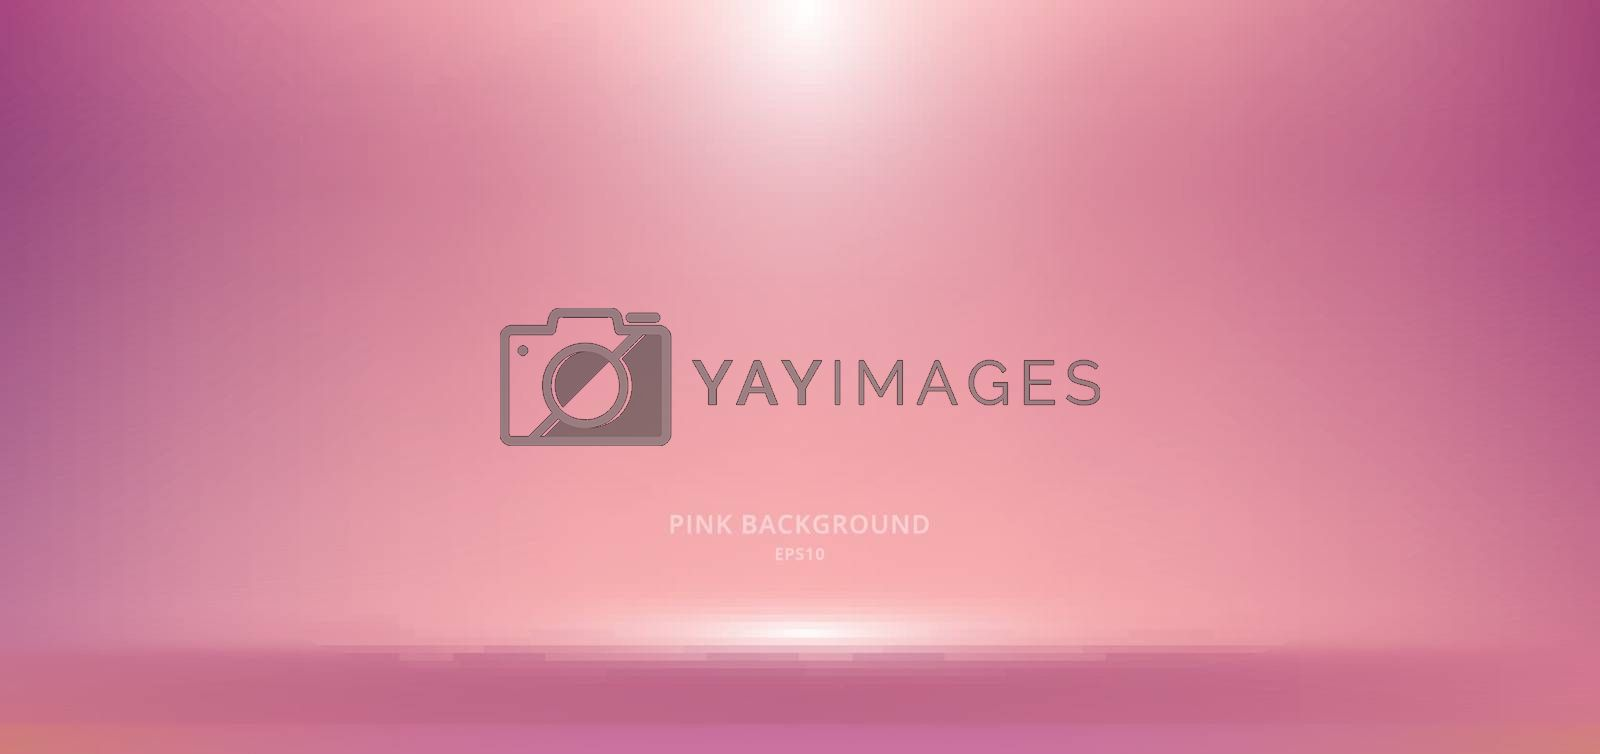 3D empty pink studio room background with spotlight on stage background. Display your product or artwork luxury style. Vector illustration